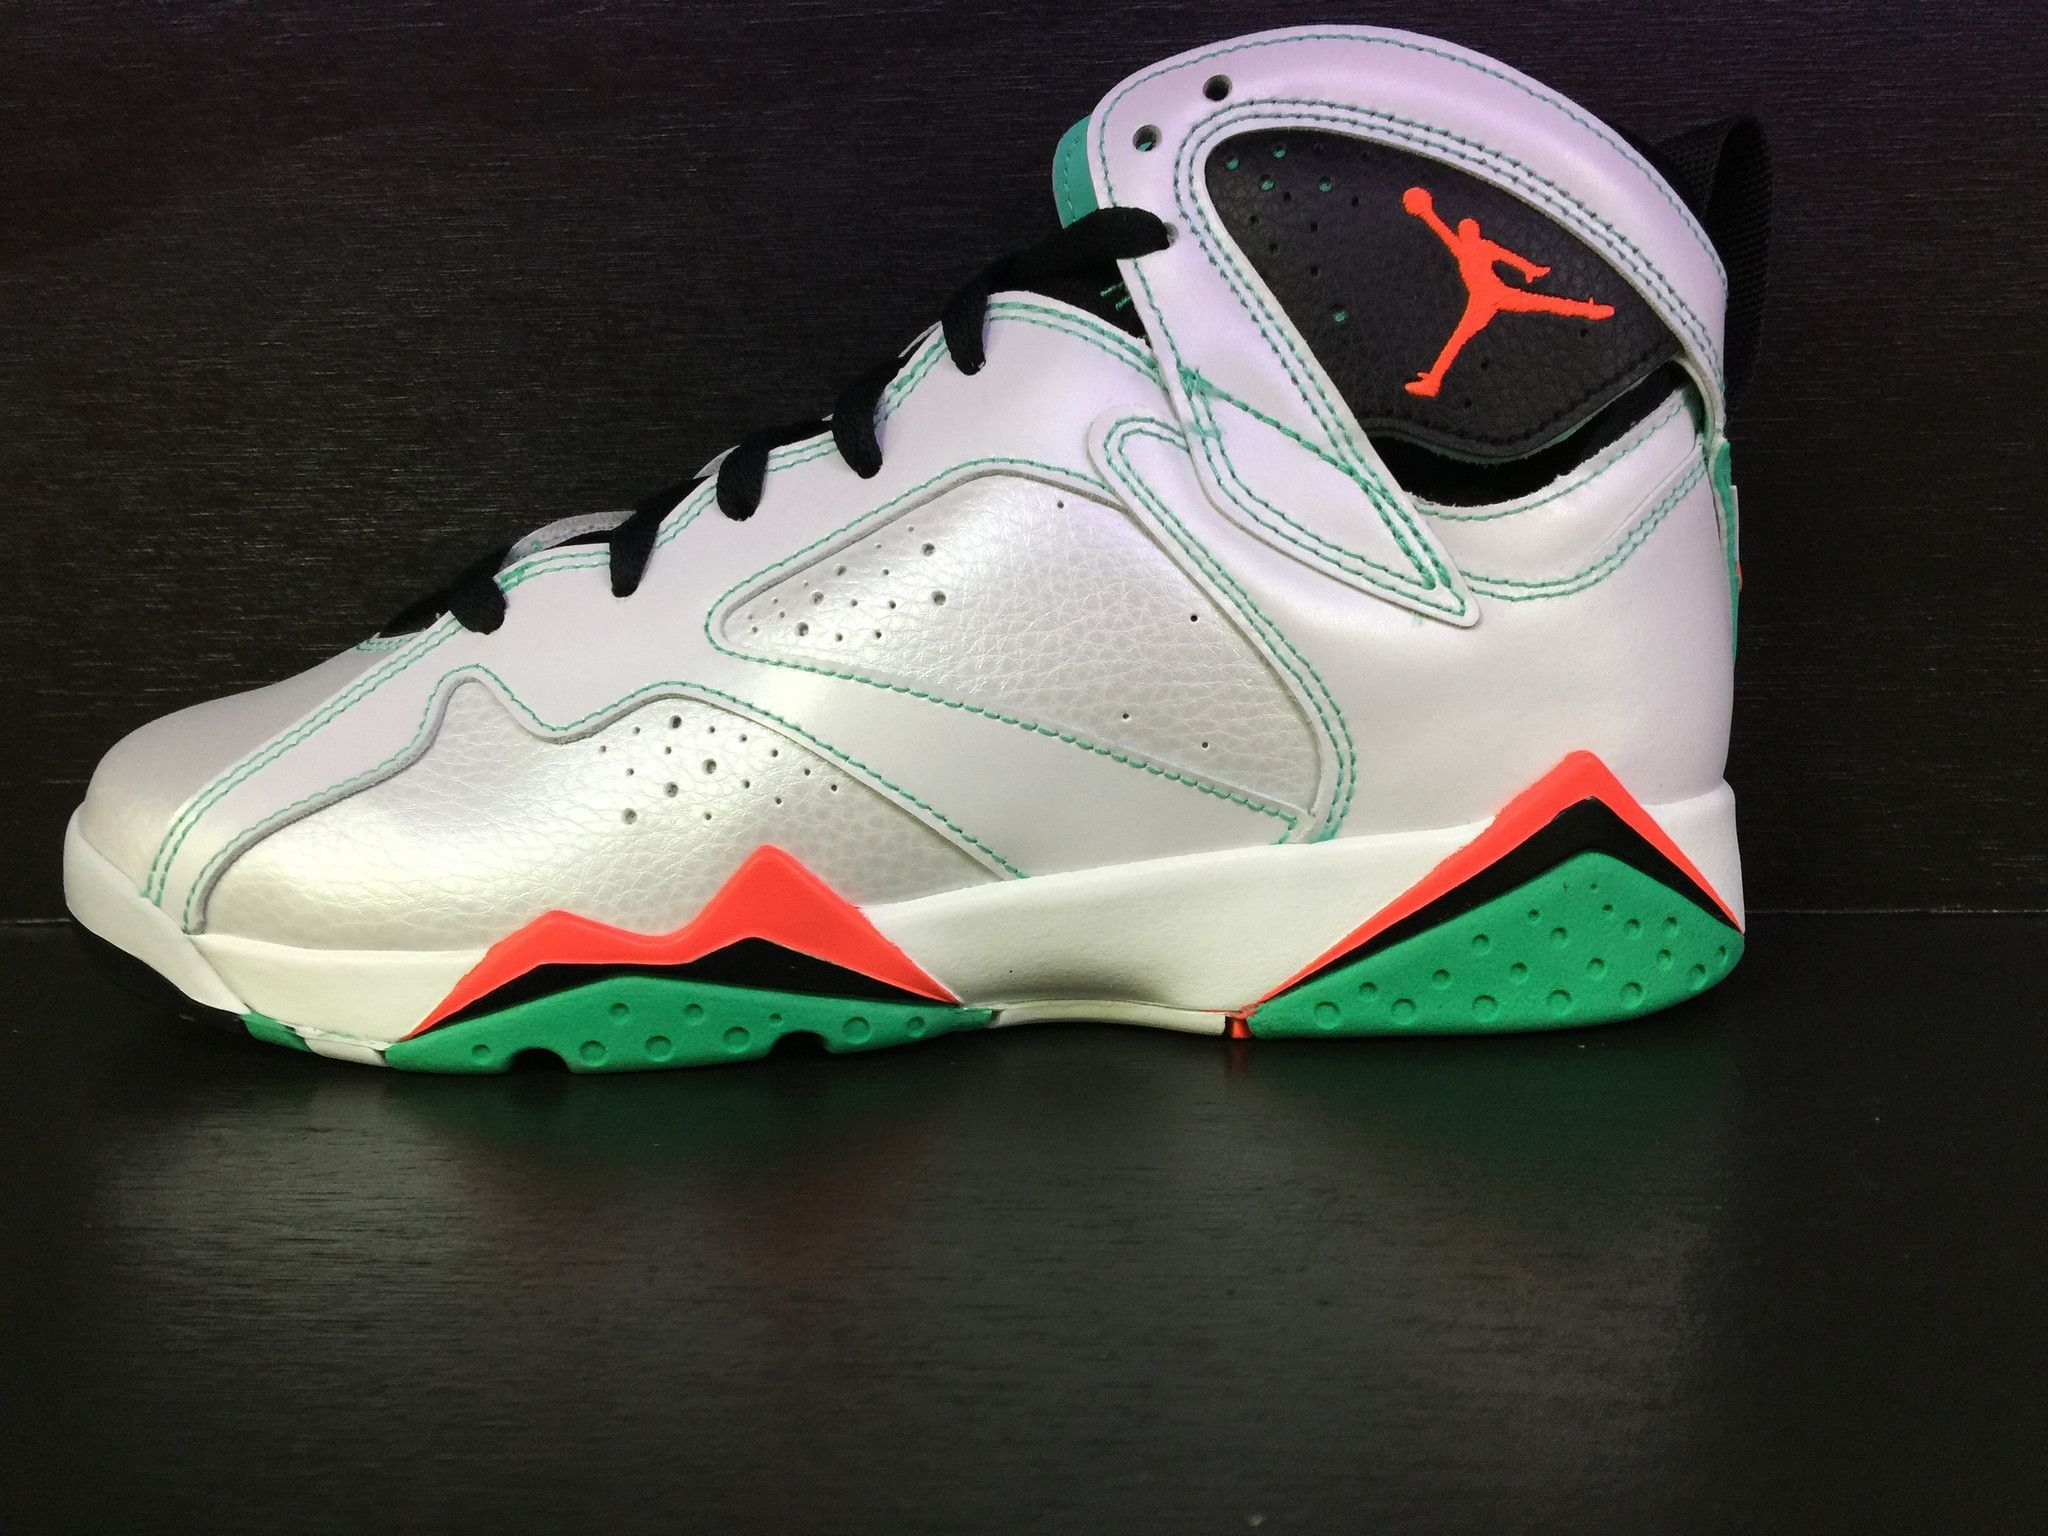 Air Jordan 7 Retro Marvin The Martian Reverse Girls Air